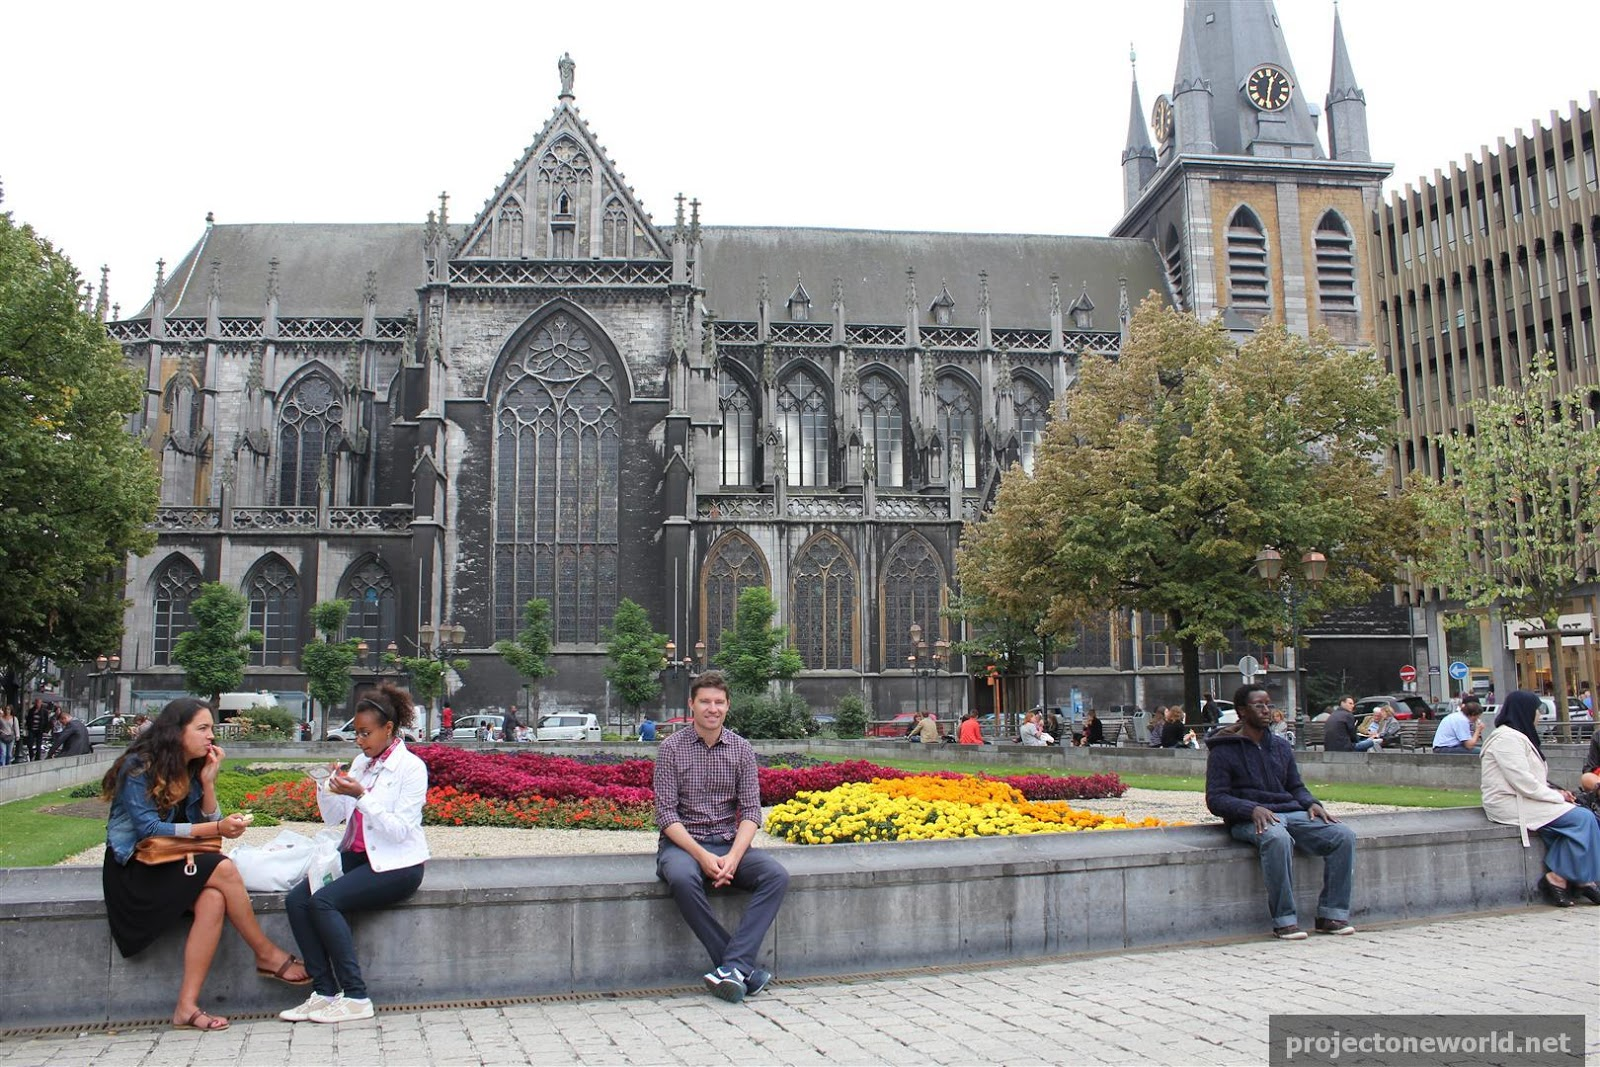 Liege Belgium  city photos : belgium, liege and spa francorchamps F1 | Project Oneworld